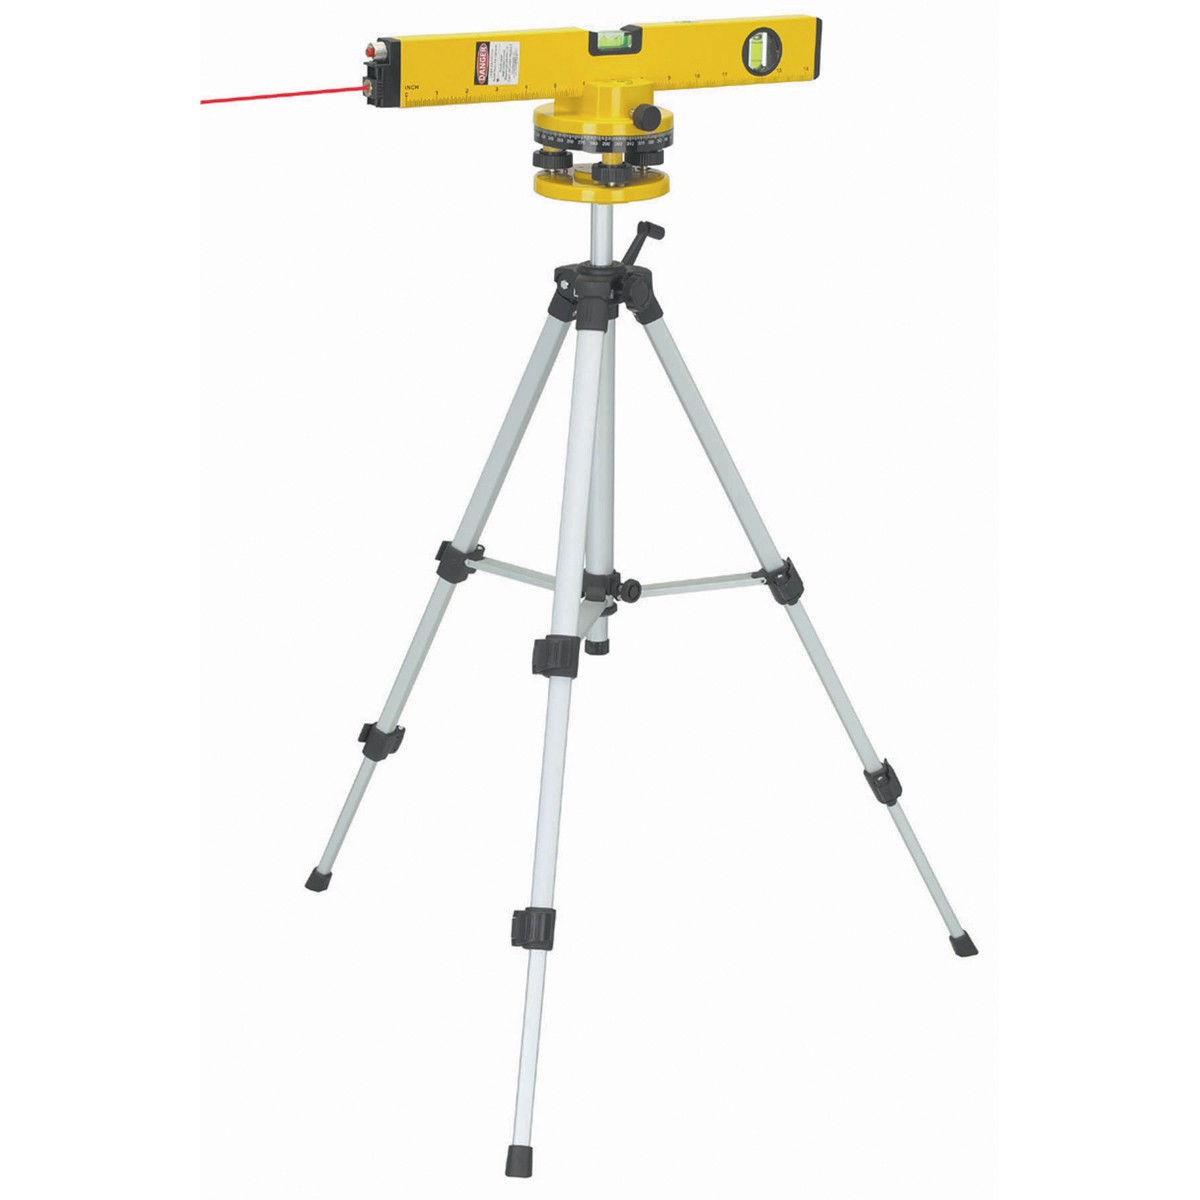 16 In. Laser Level with Swivel Head